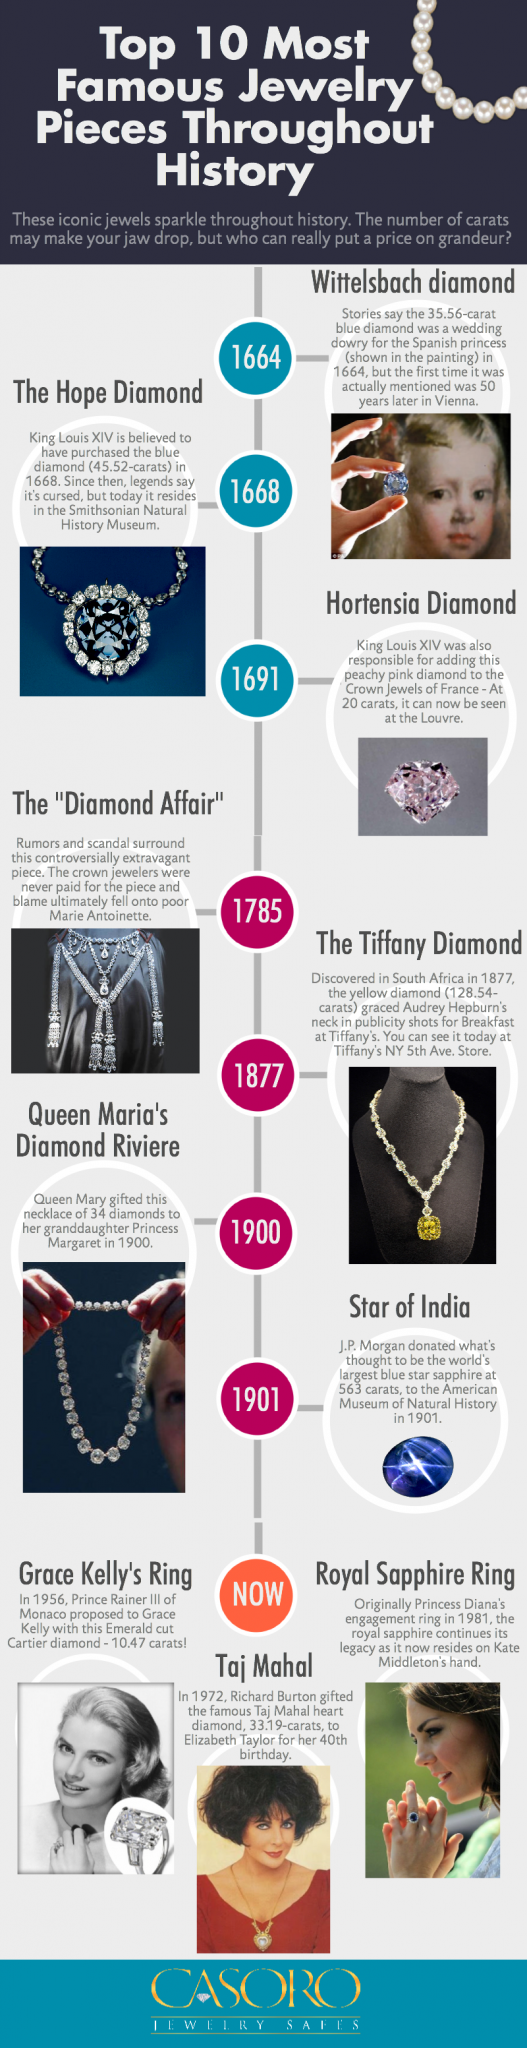 Famous Jewelry Pieces Throughout History - Casoro Jewelry Safes